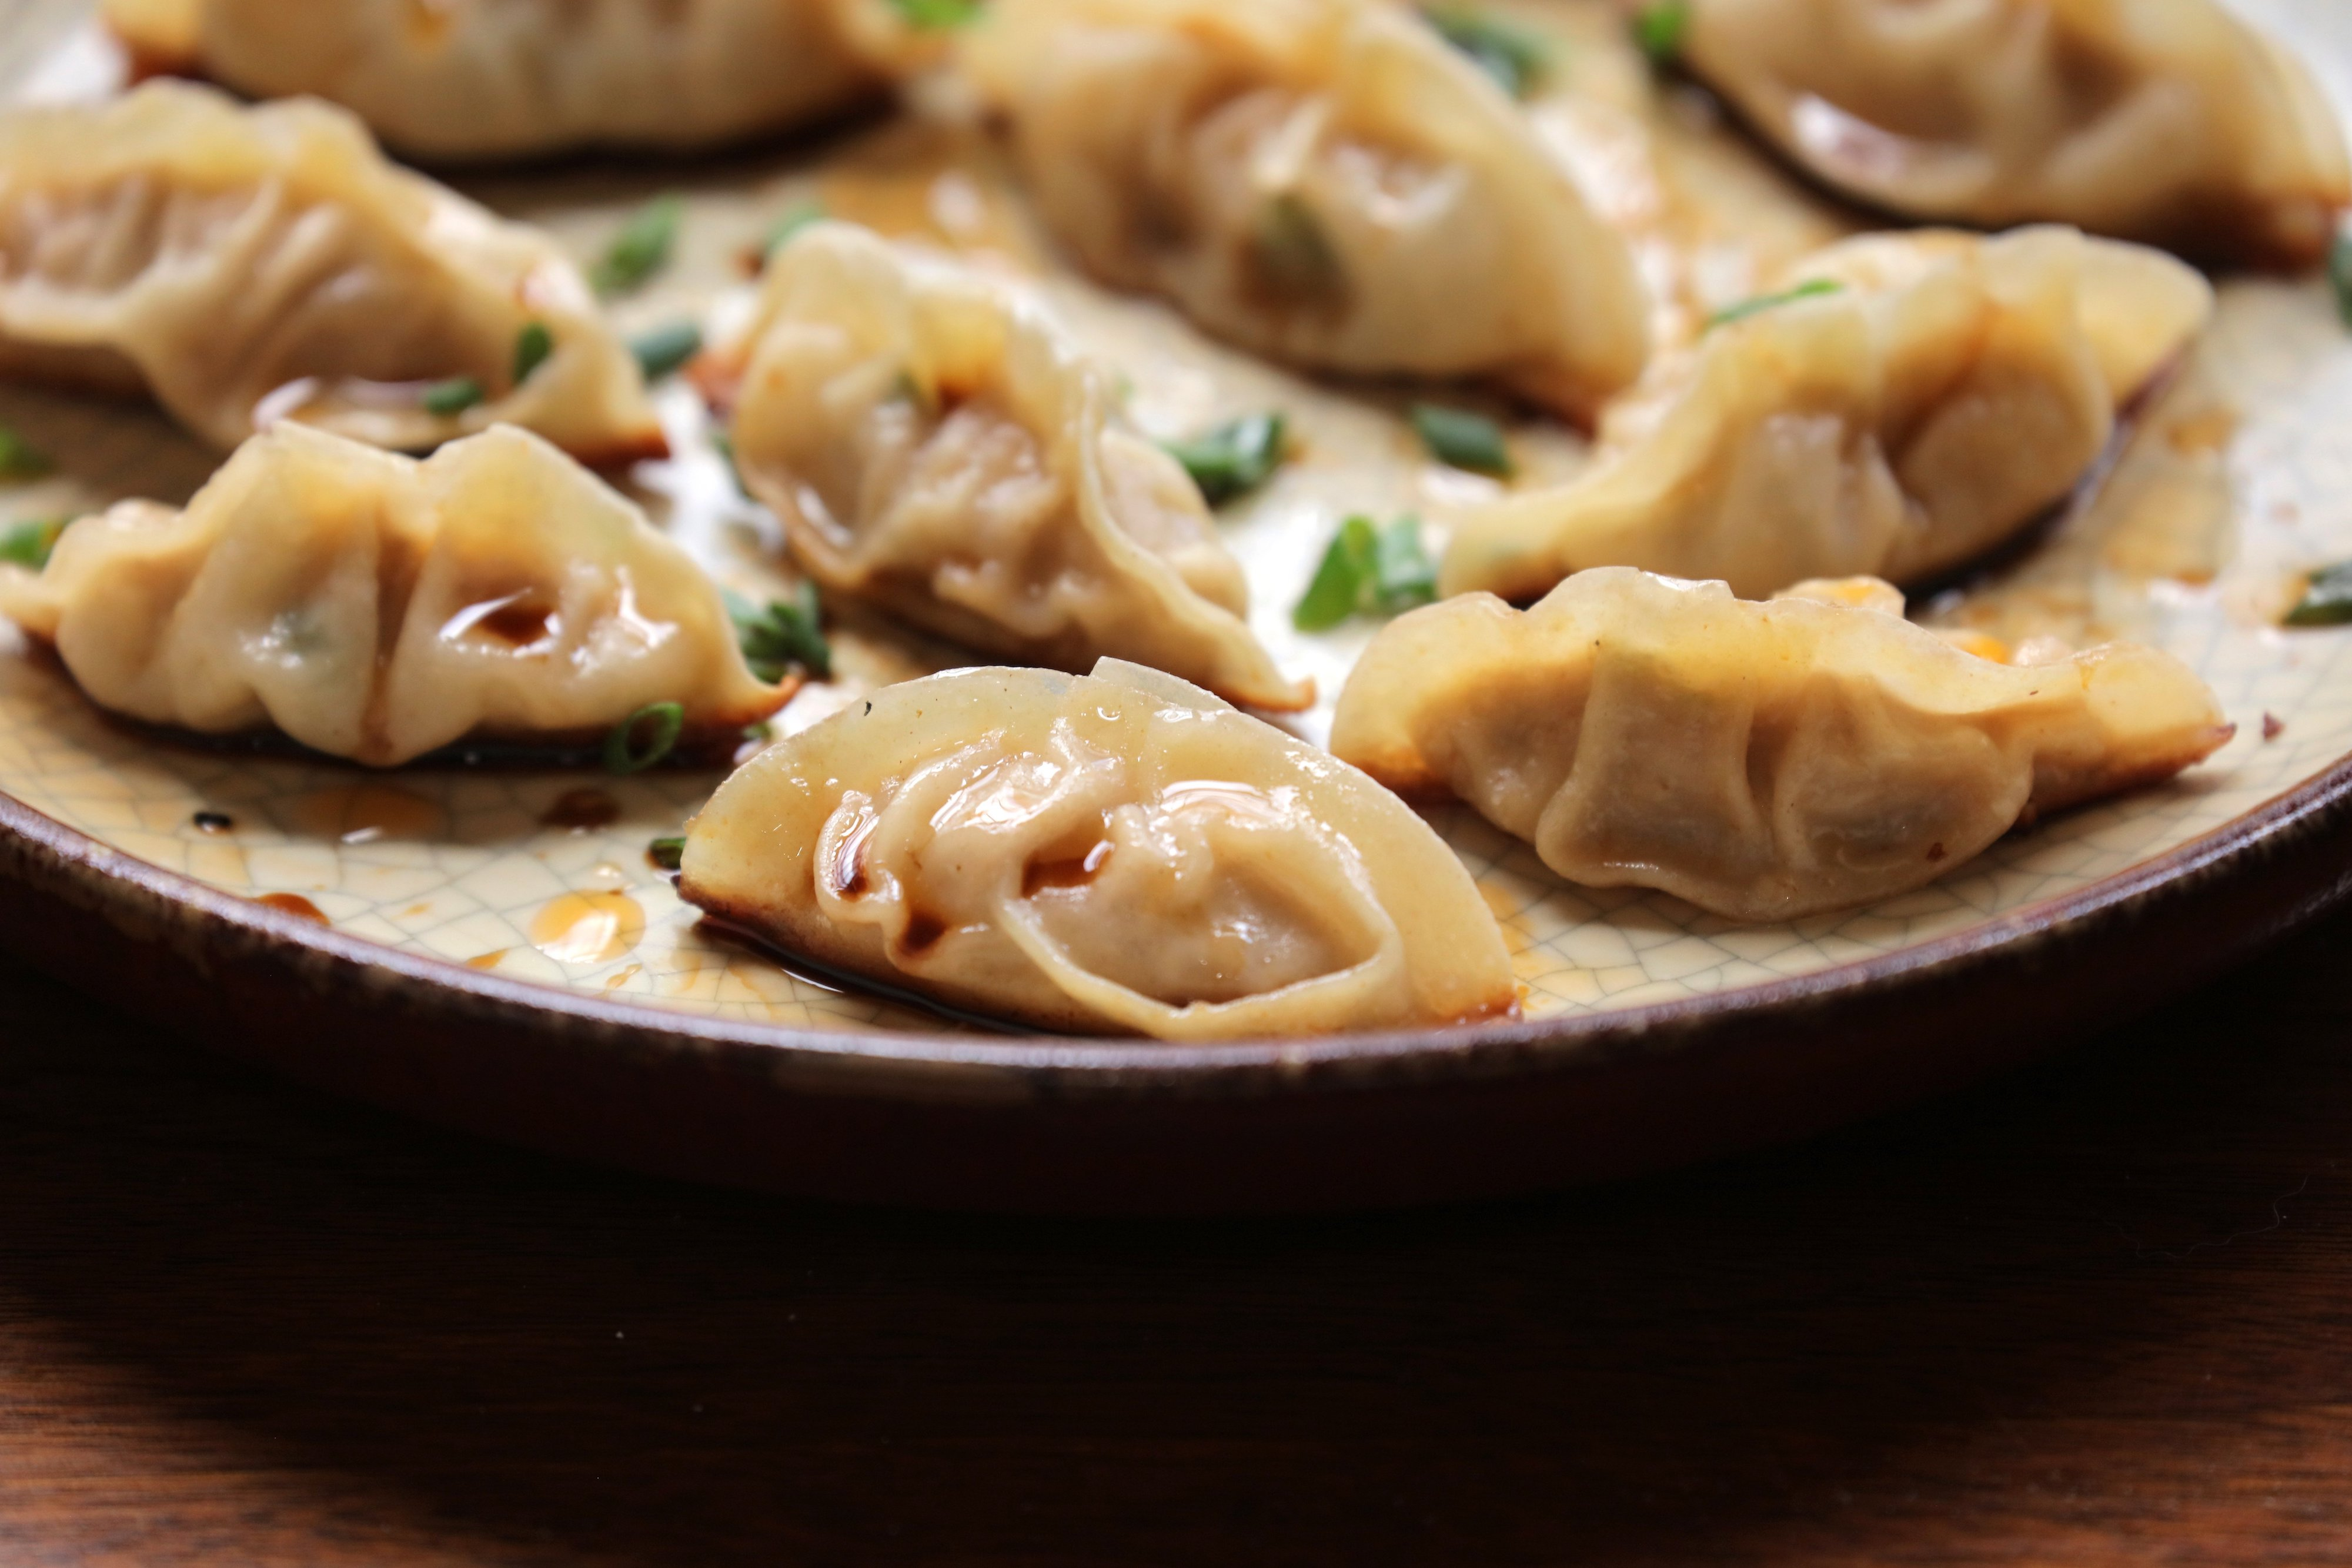 Everything You Need To Know To Make Asian Style Dumplings At Home